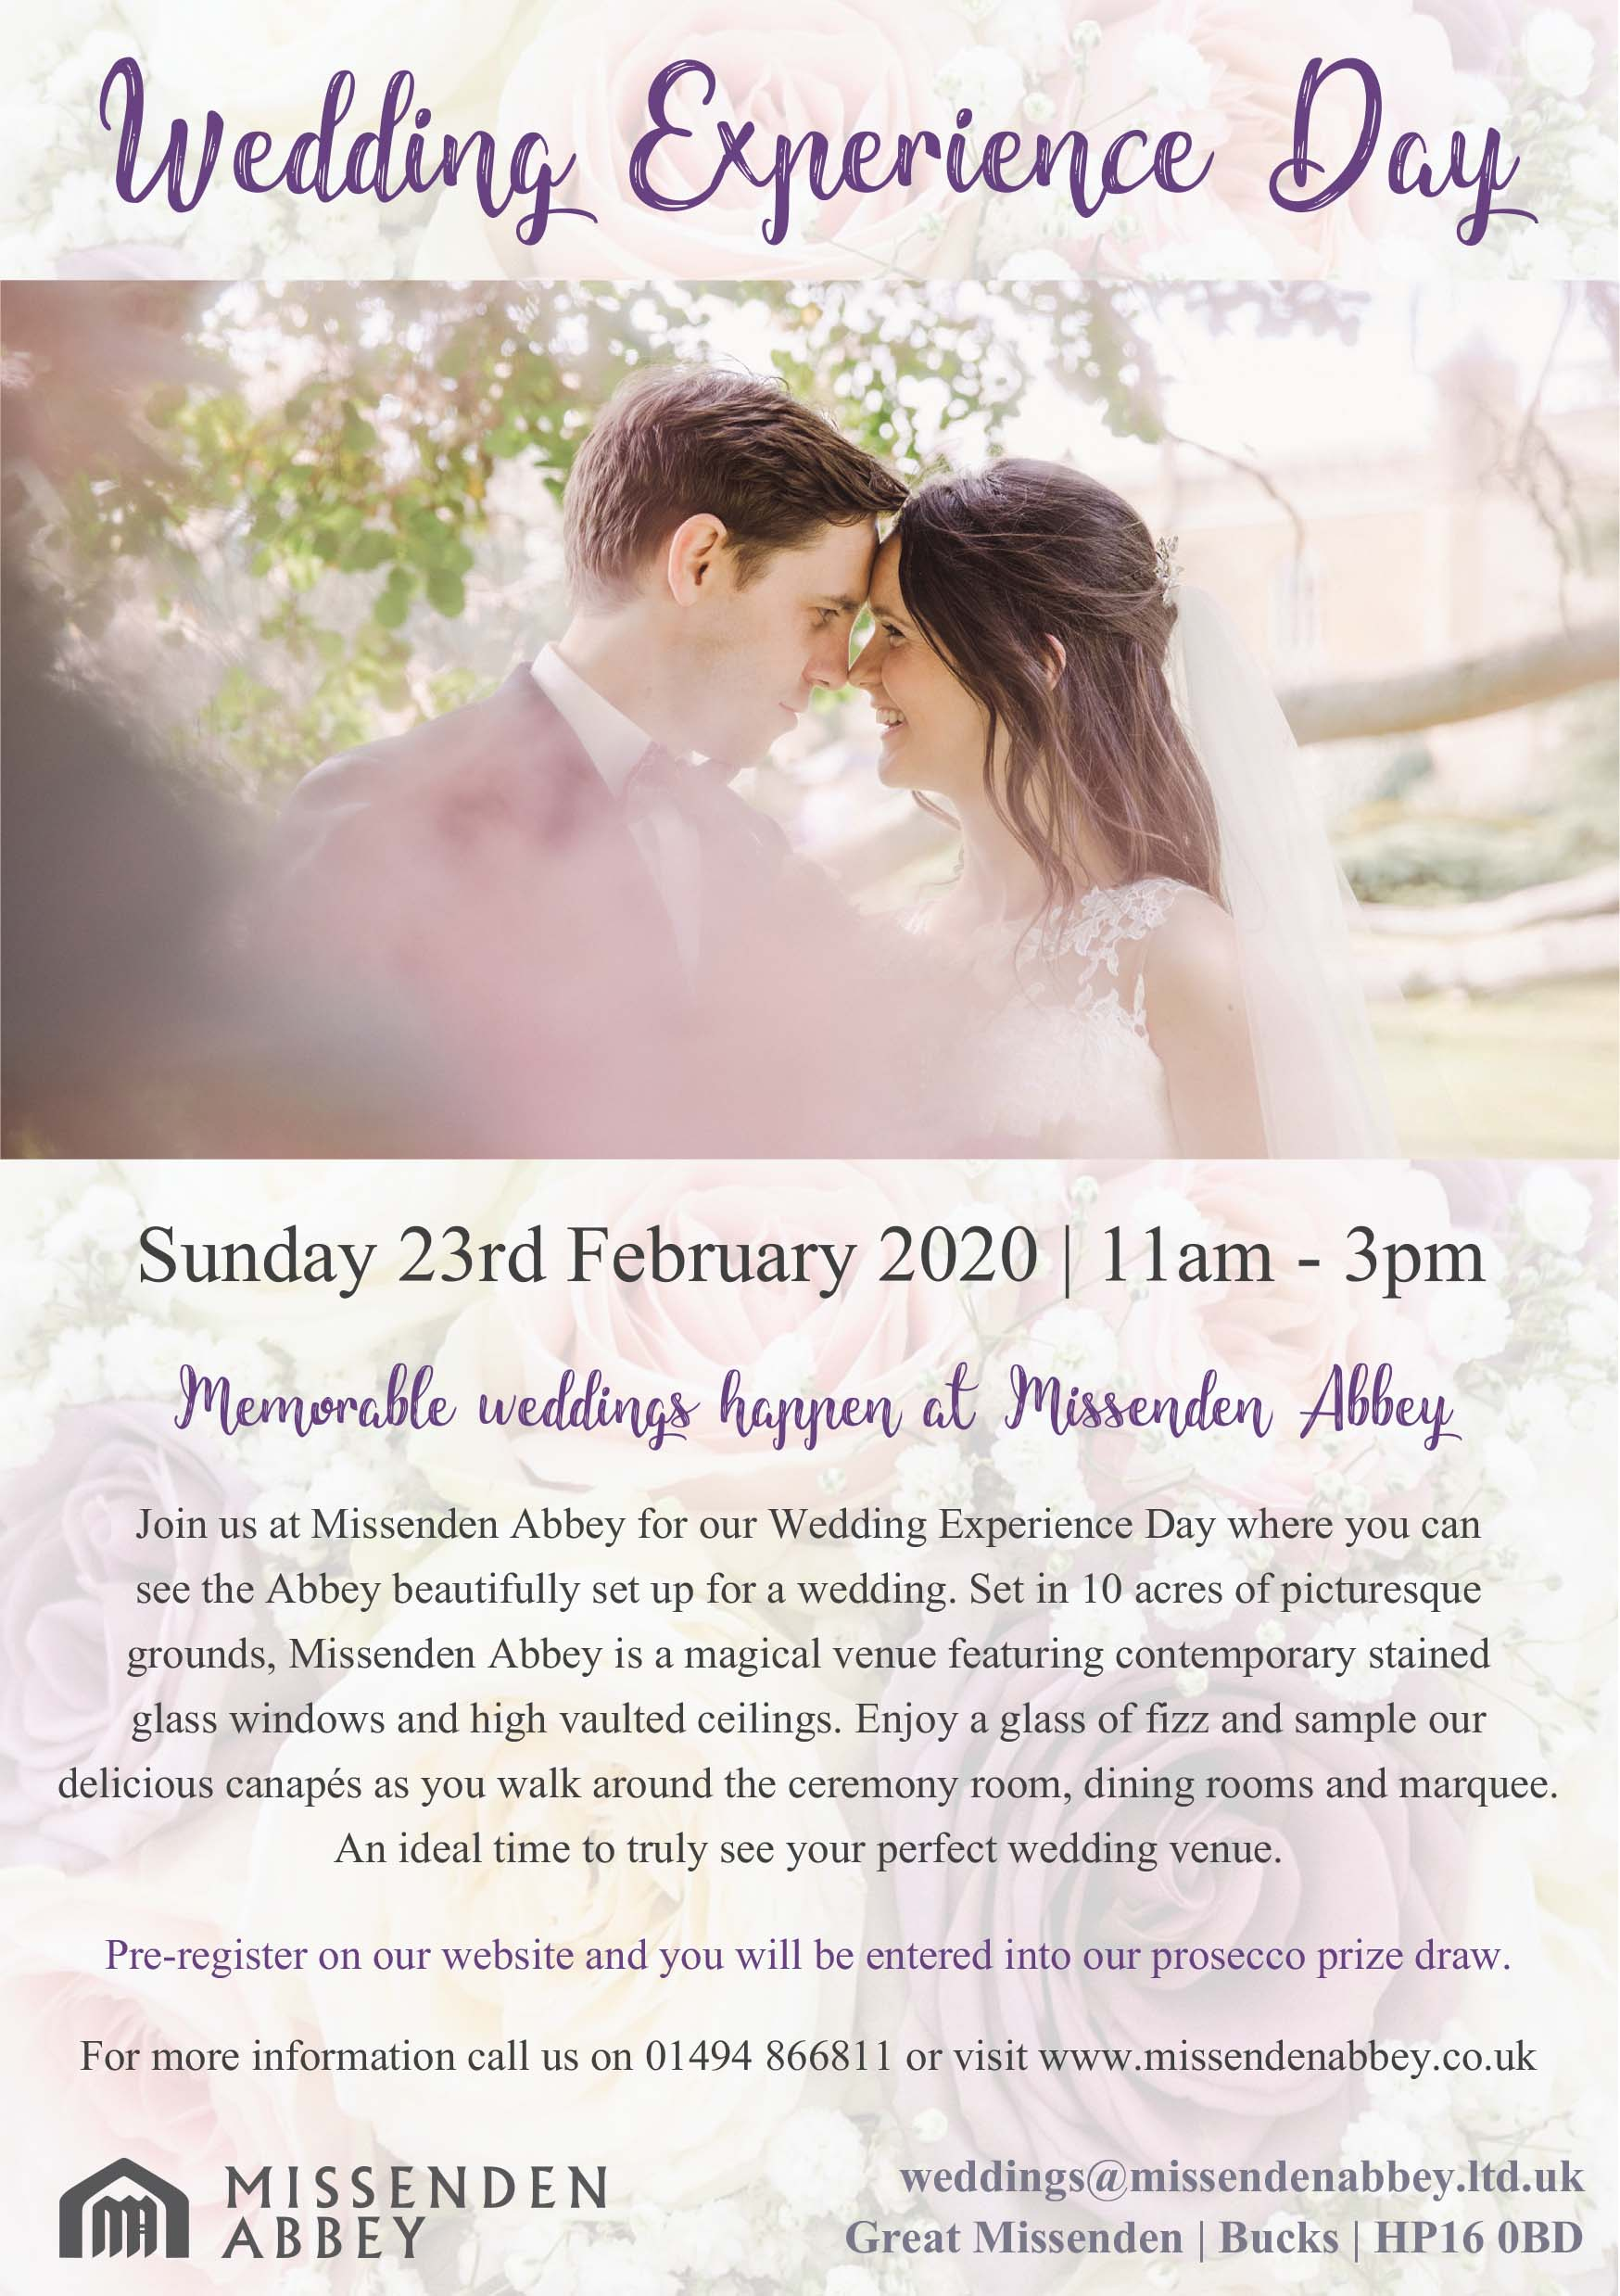 Missenden Abbey Wedding Experience Day